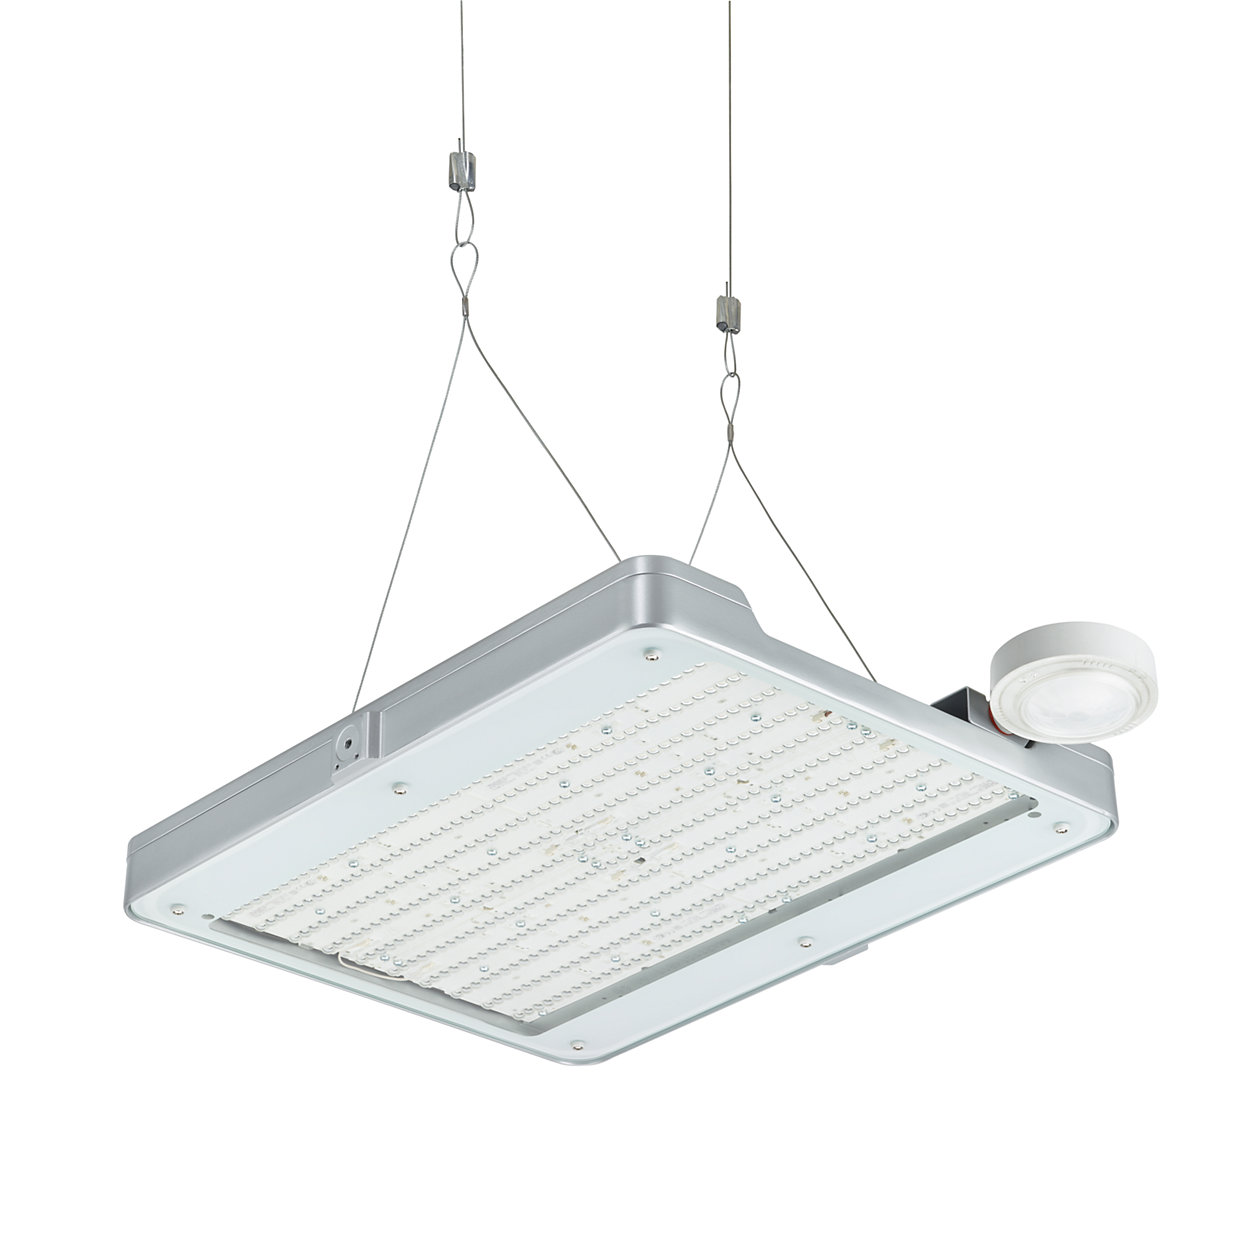 Adaptable high-bay lighting offering high efficiency and connectivity options to lighting systems and software applications.